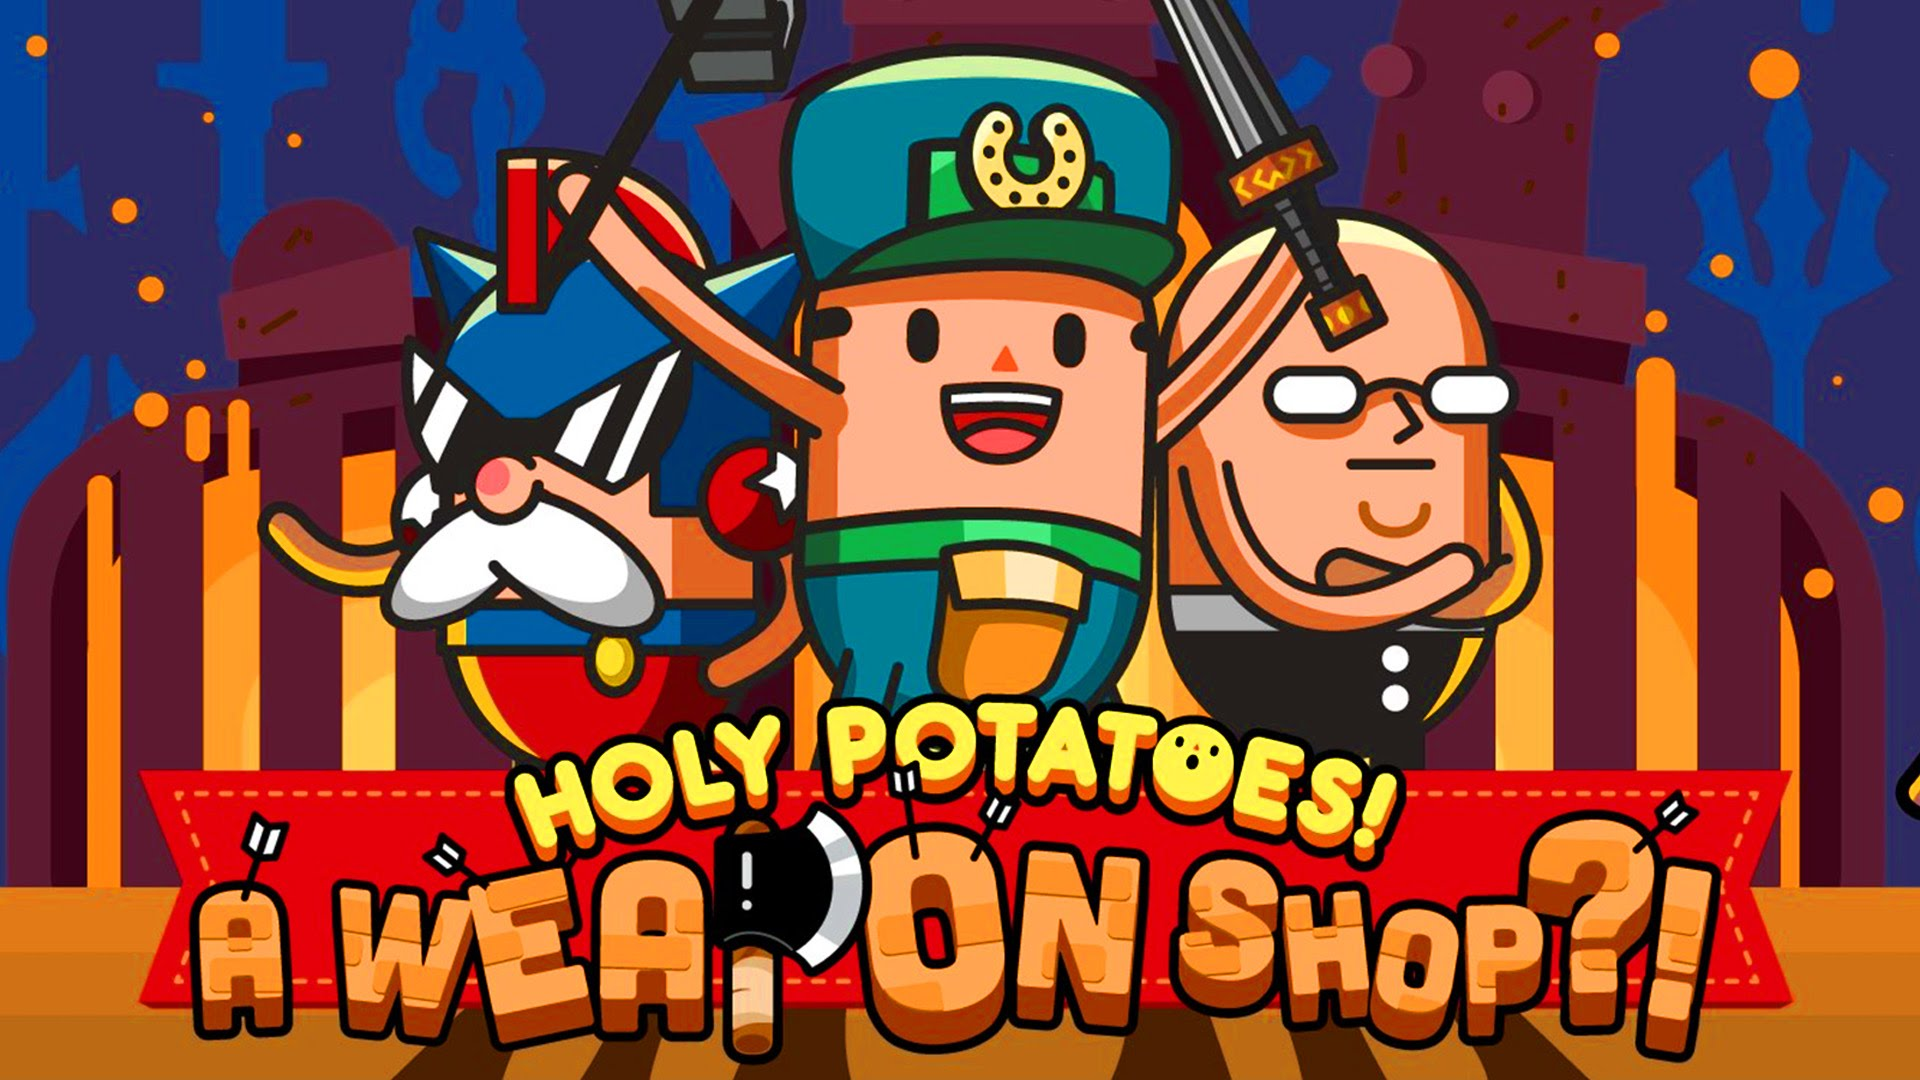 holy-potatoes-a-weapon-shop-daylight-studios